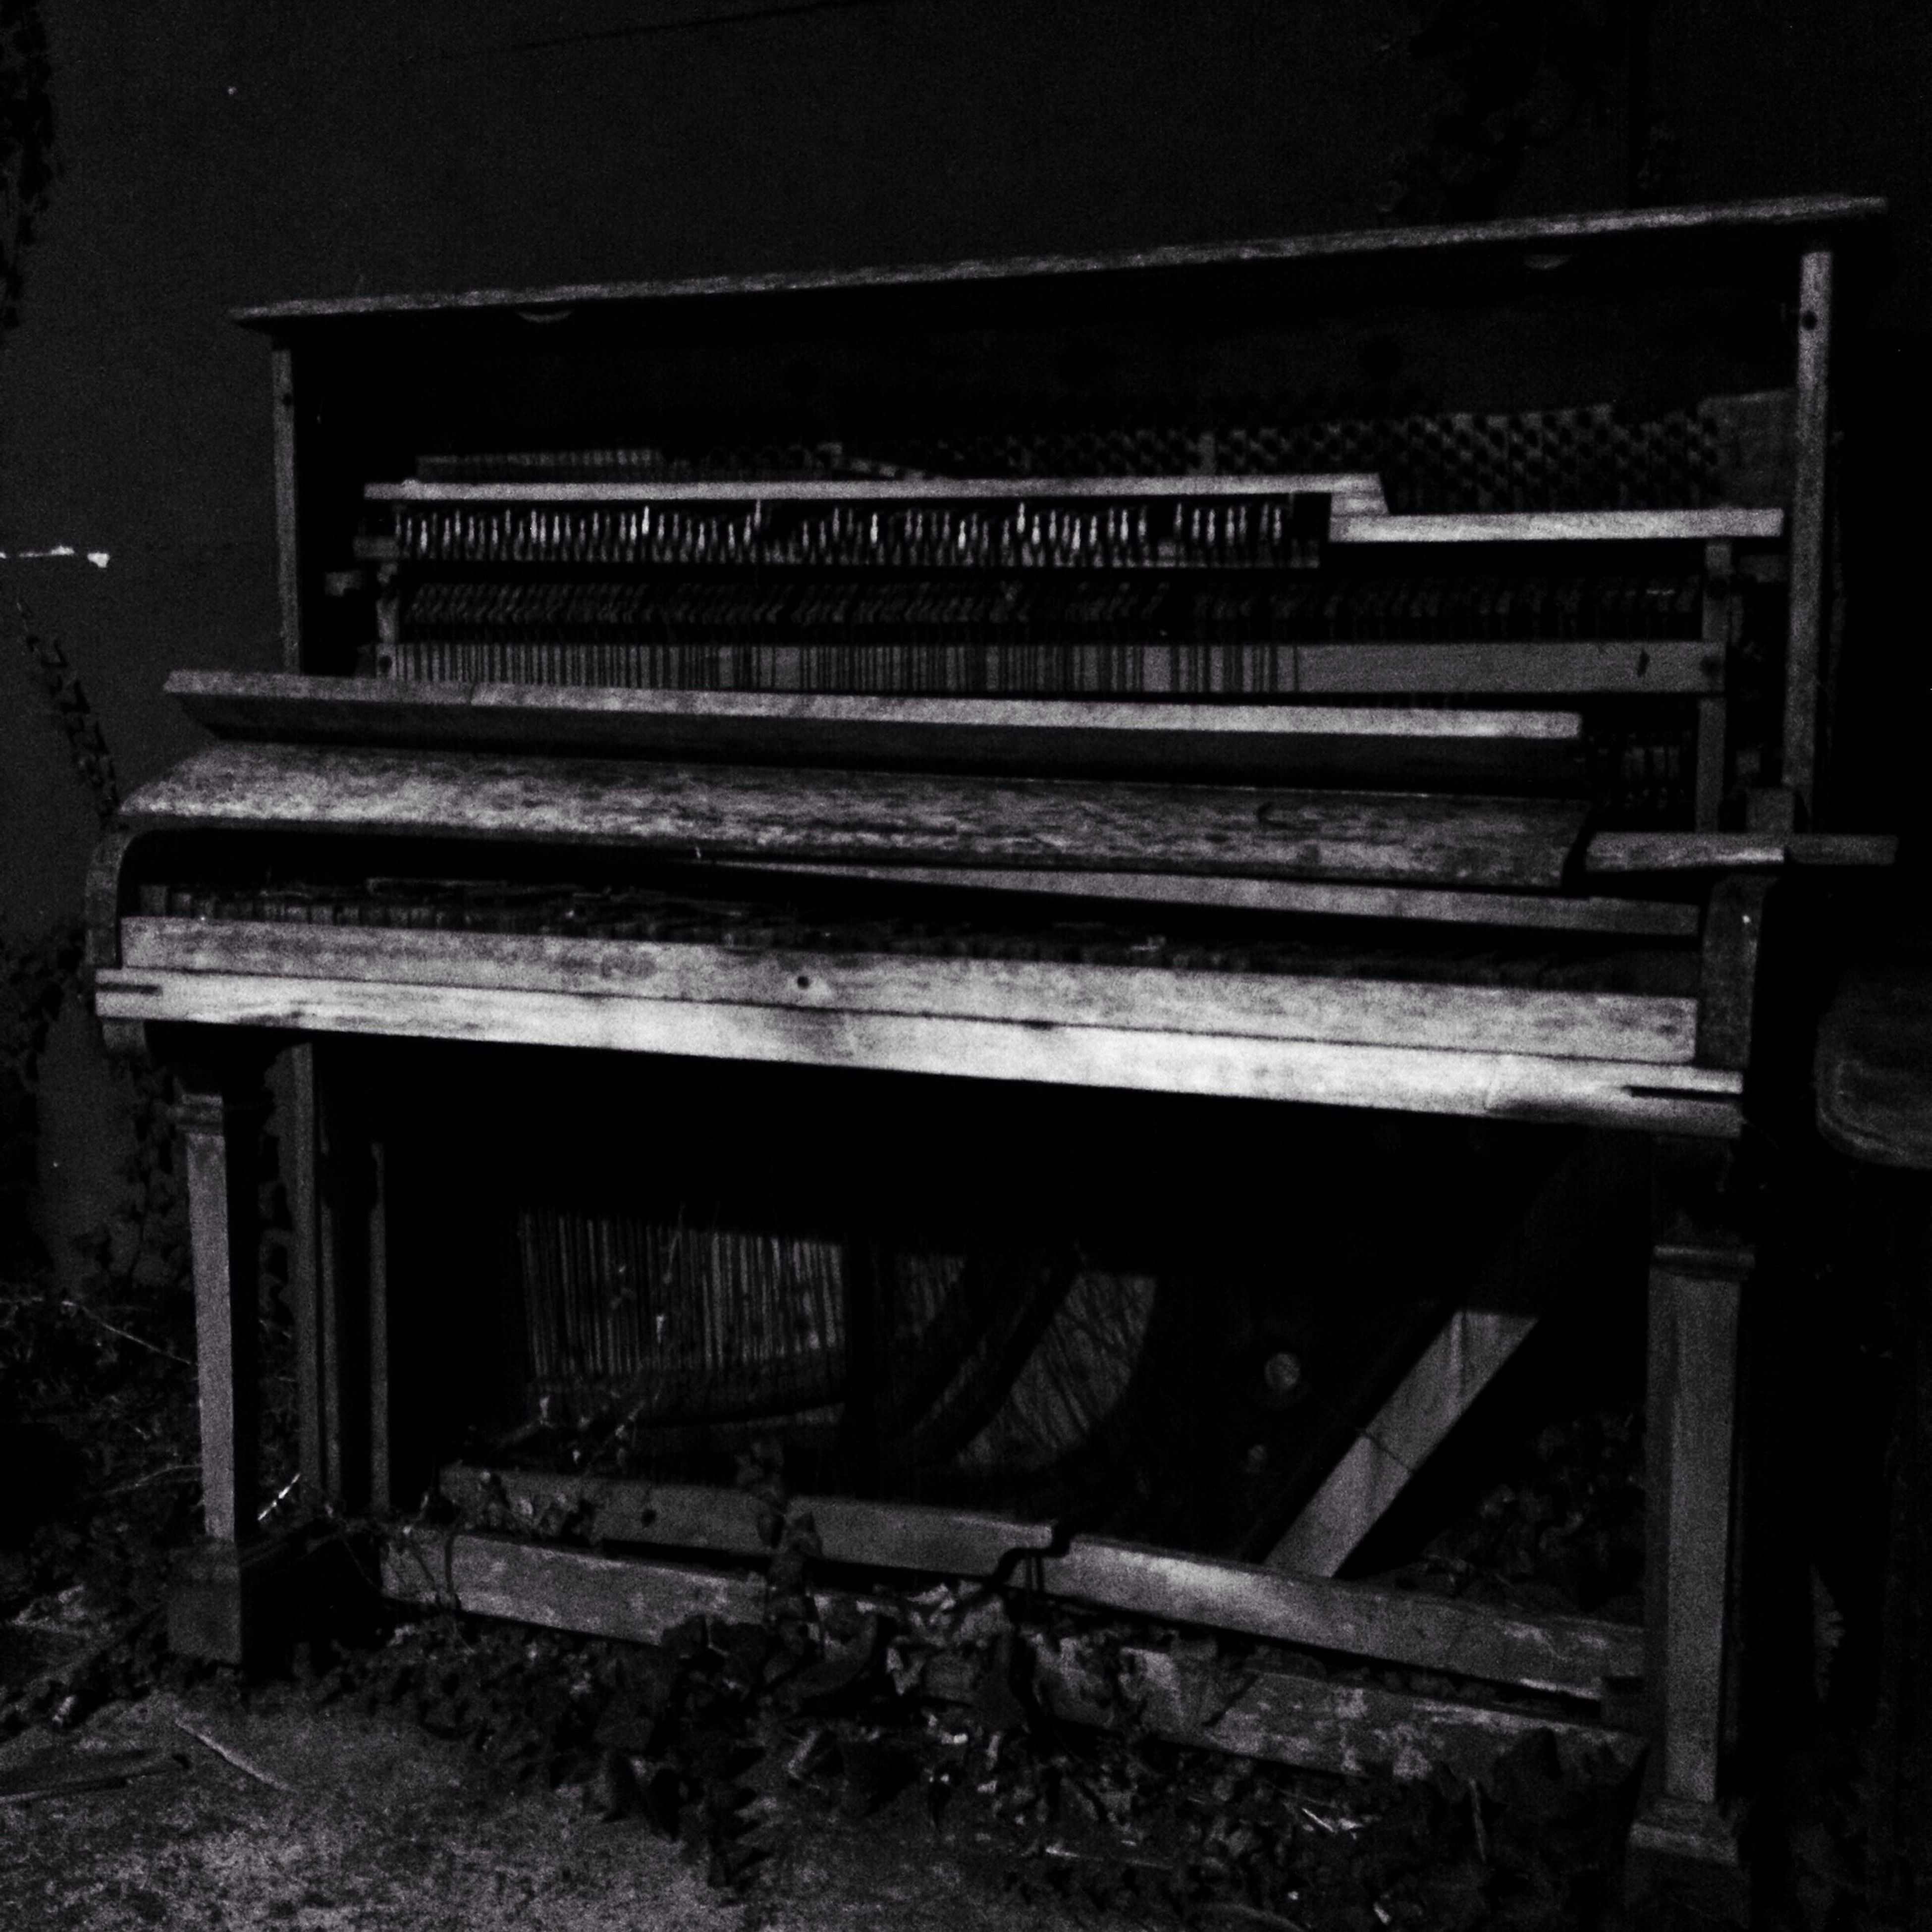 piano, music, arts culture and entertainment, no people, abandoned, musical instrument, close-up, indoors, day